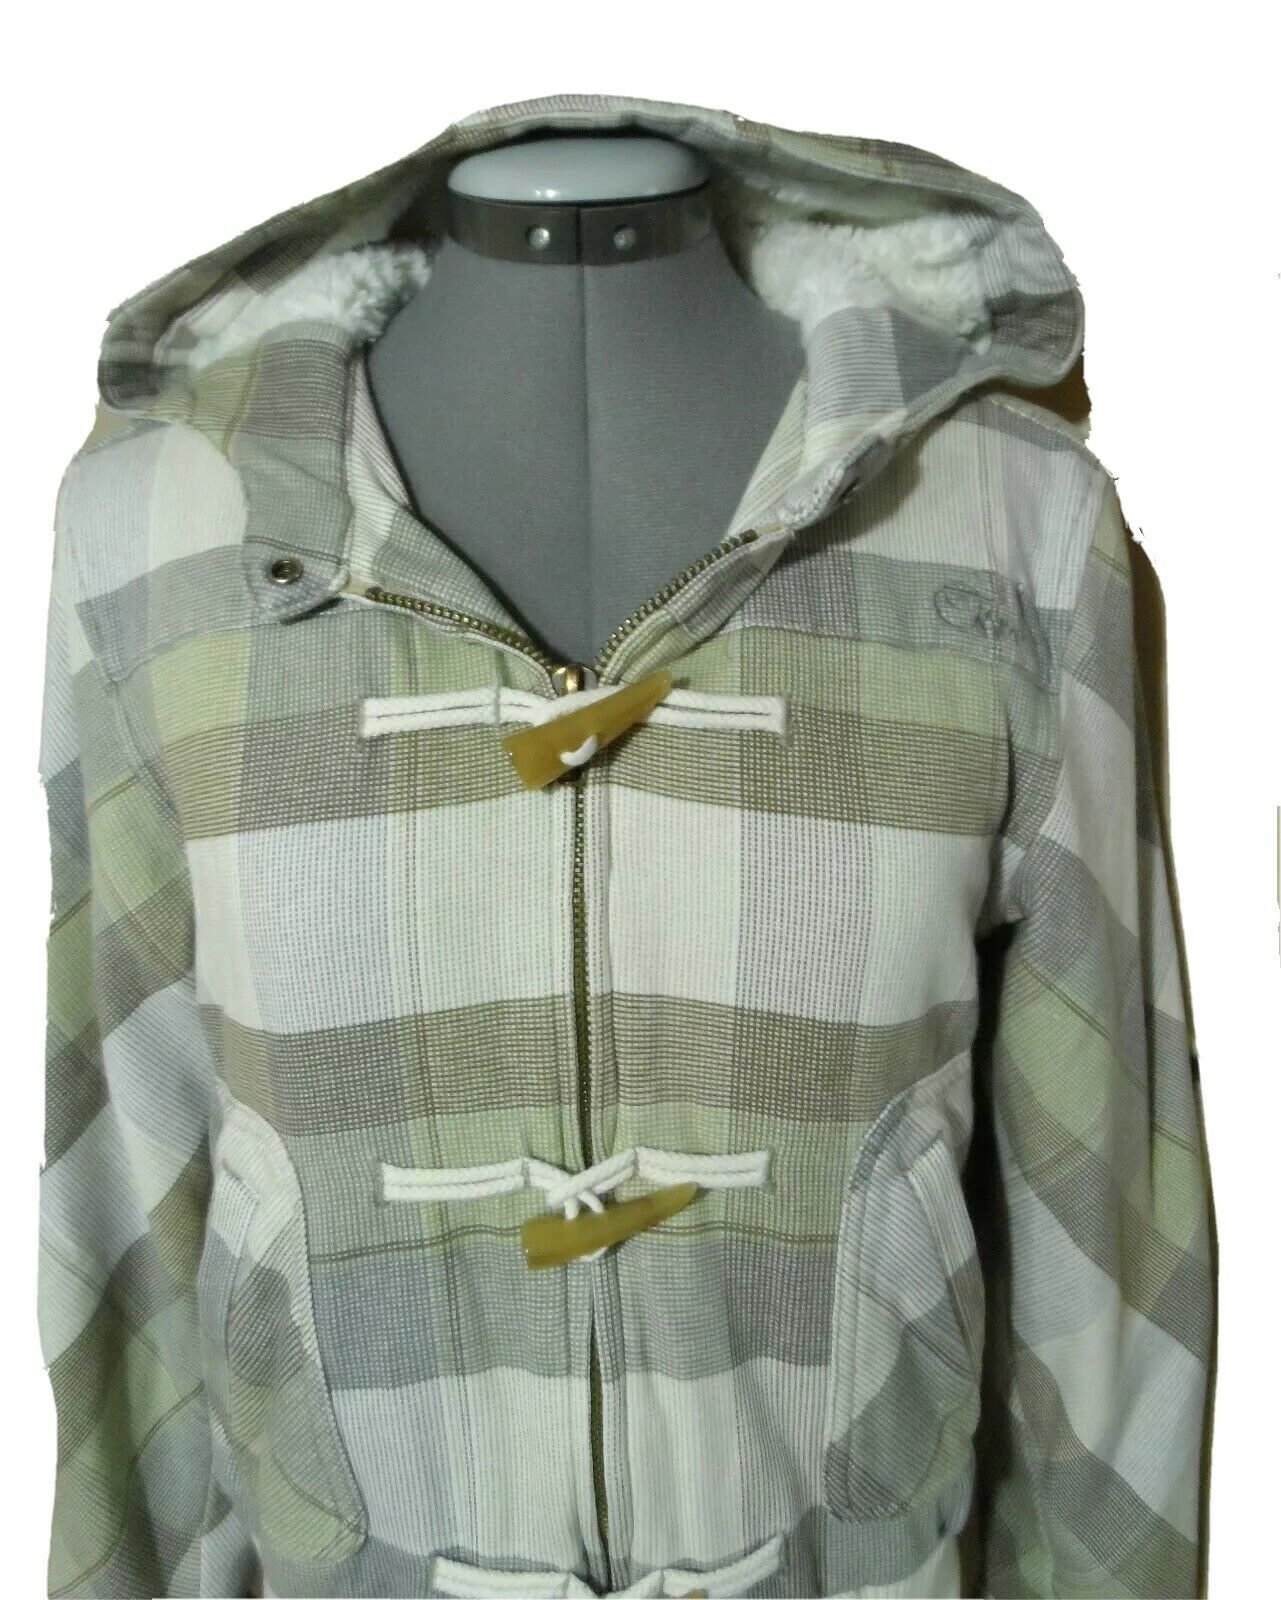 O'NEILL Double Lined Hoodie Sweatshirt Jr S Ivory Blue Green w/ Zip up Toggles